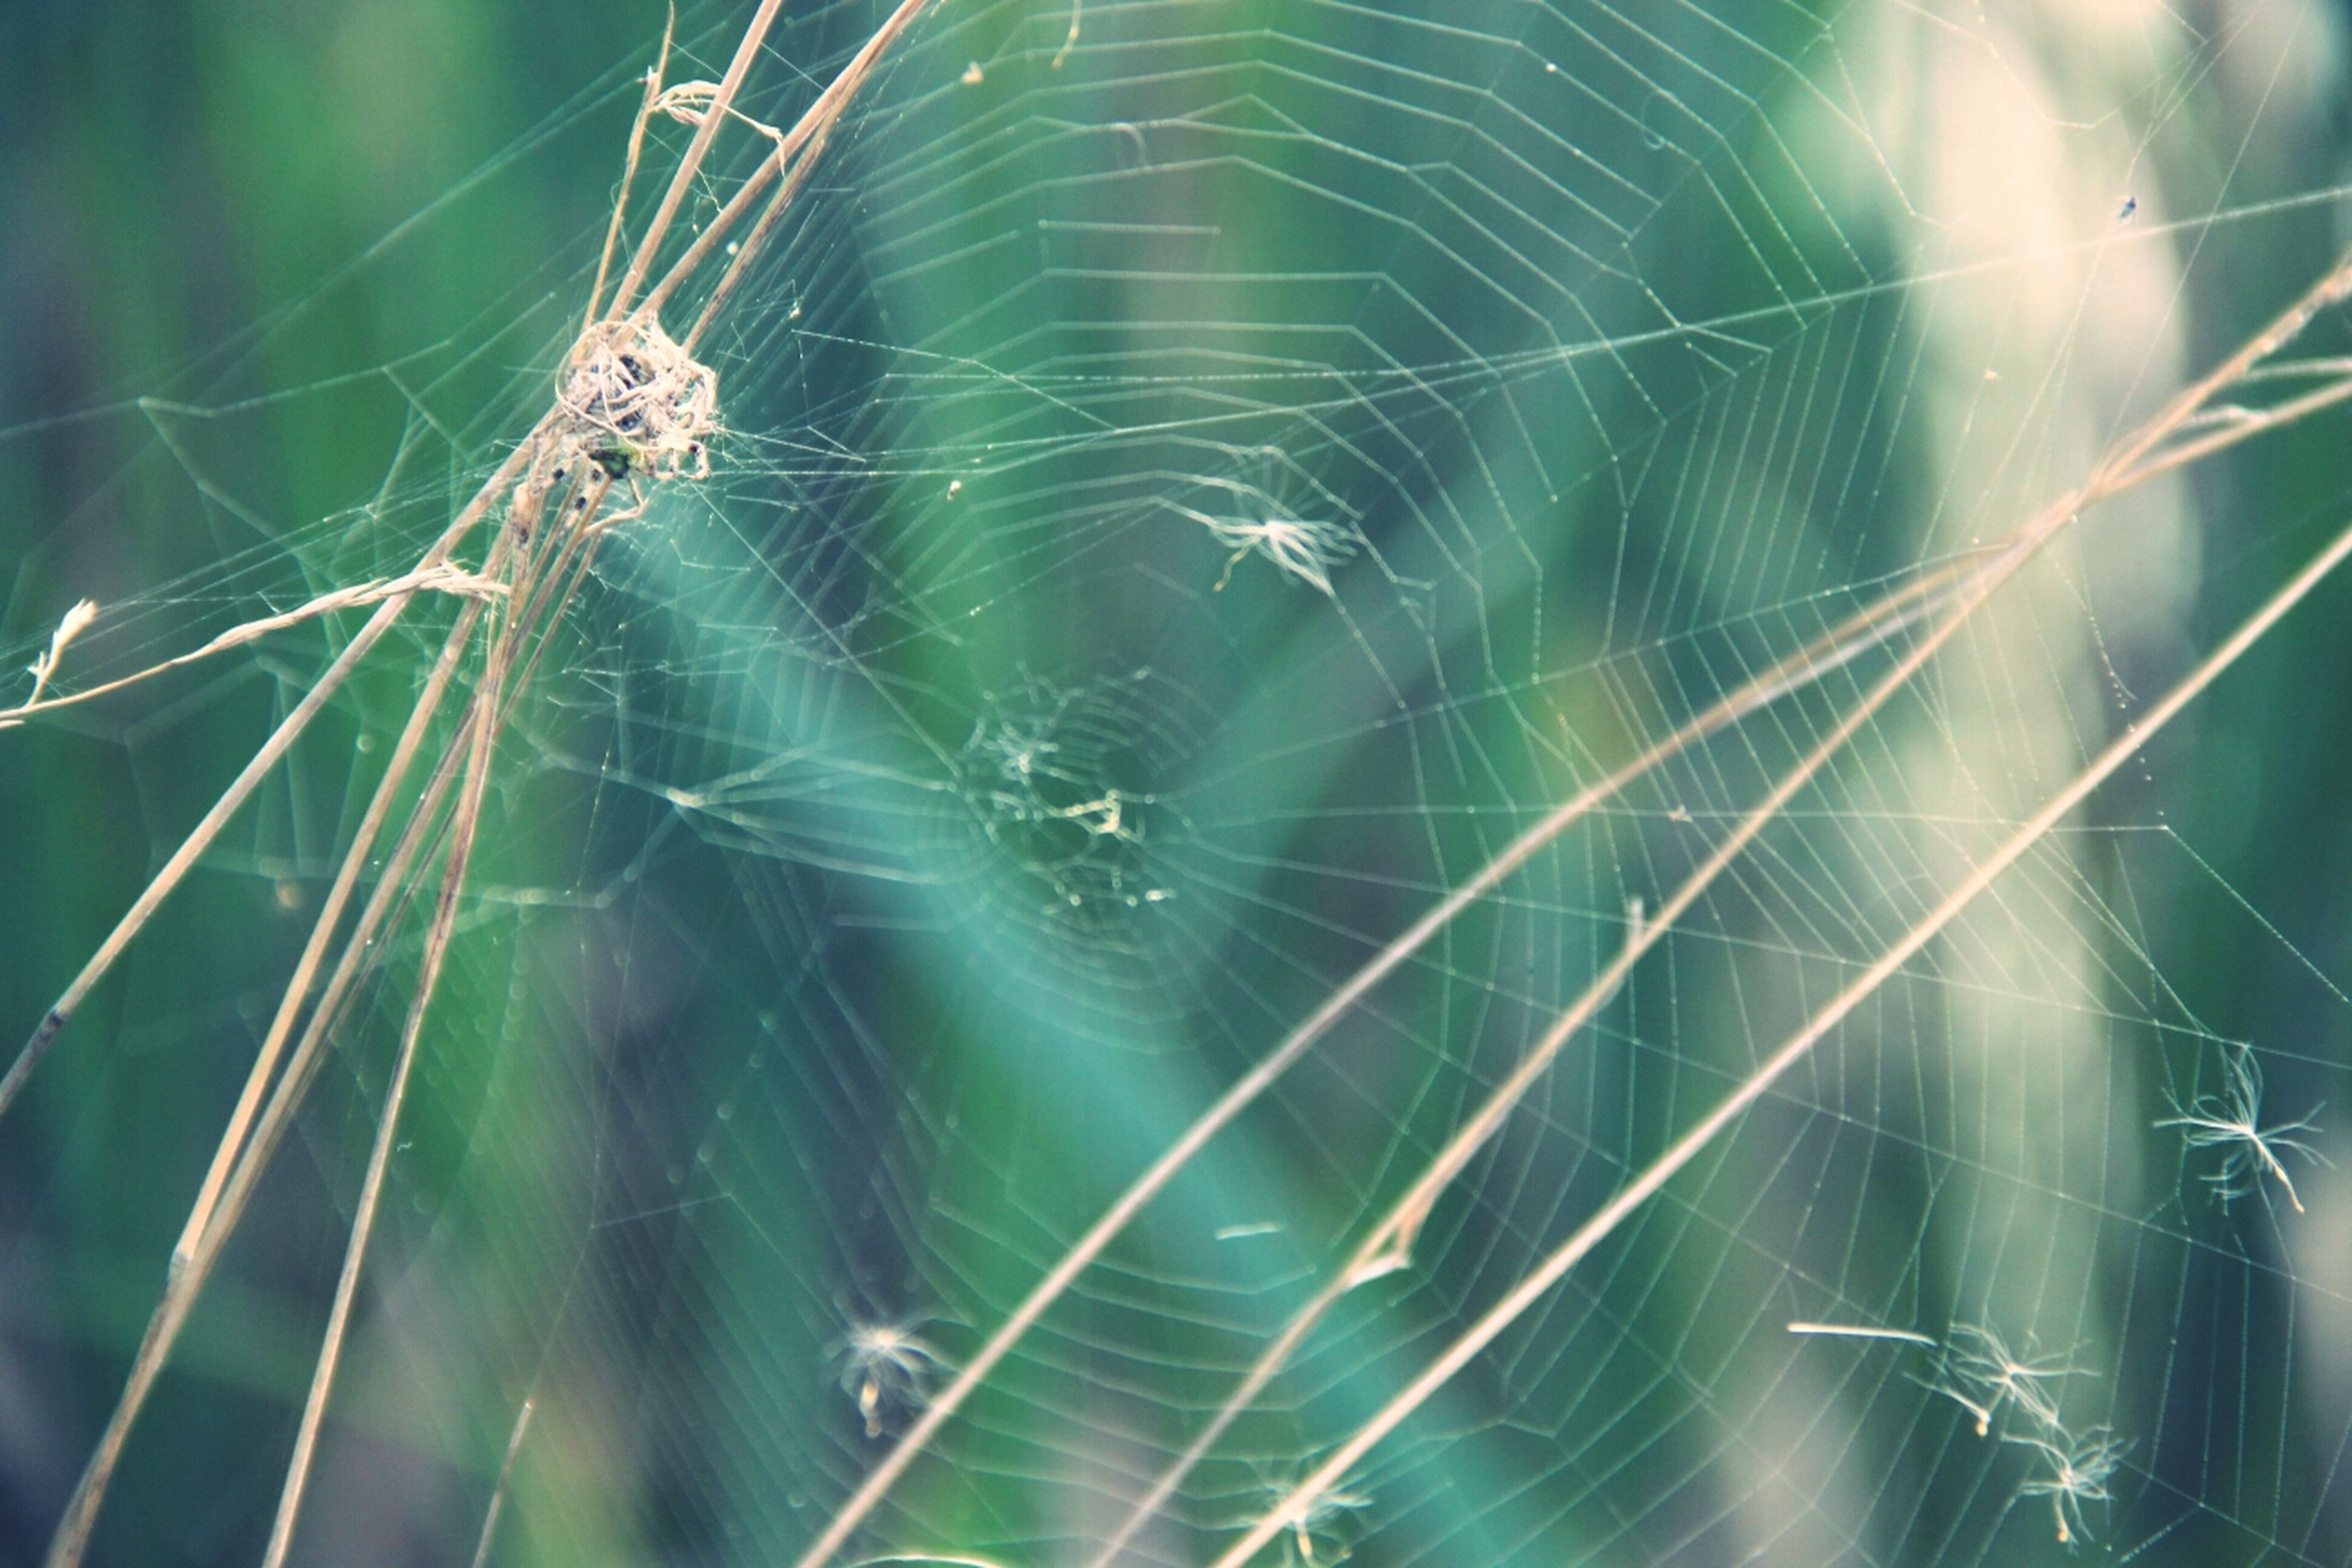 spider web, animal themes, spider, focus on foreground, one animal, insect, animals in the wild, close-up, wildlife, web, complexity, fragility, nature, natural pattern, outdoors, day, low angle view, no people, beauty in nature, selective focus